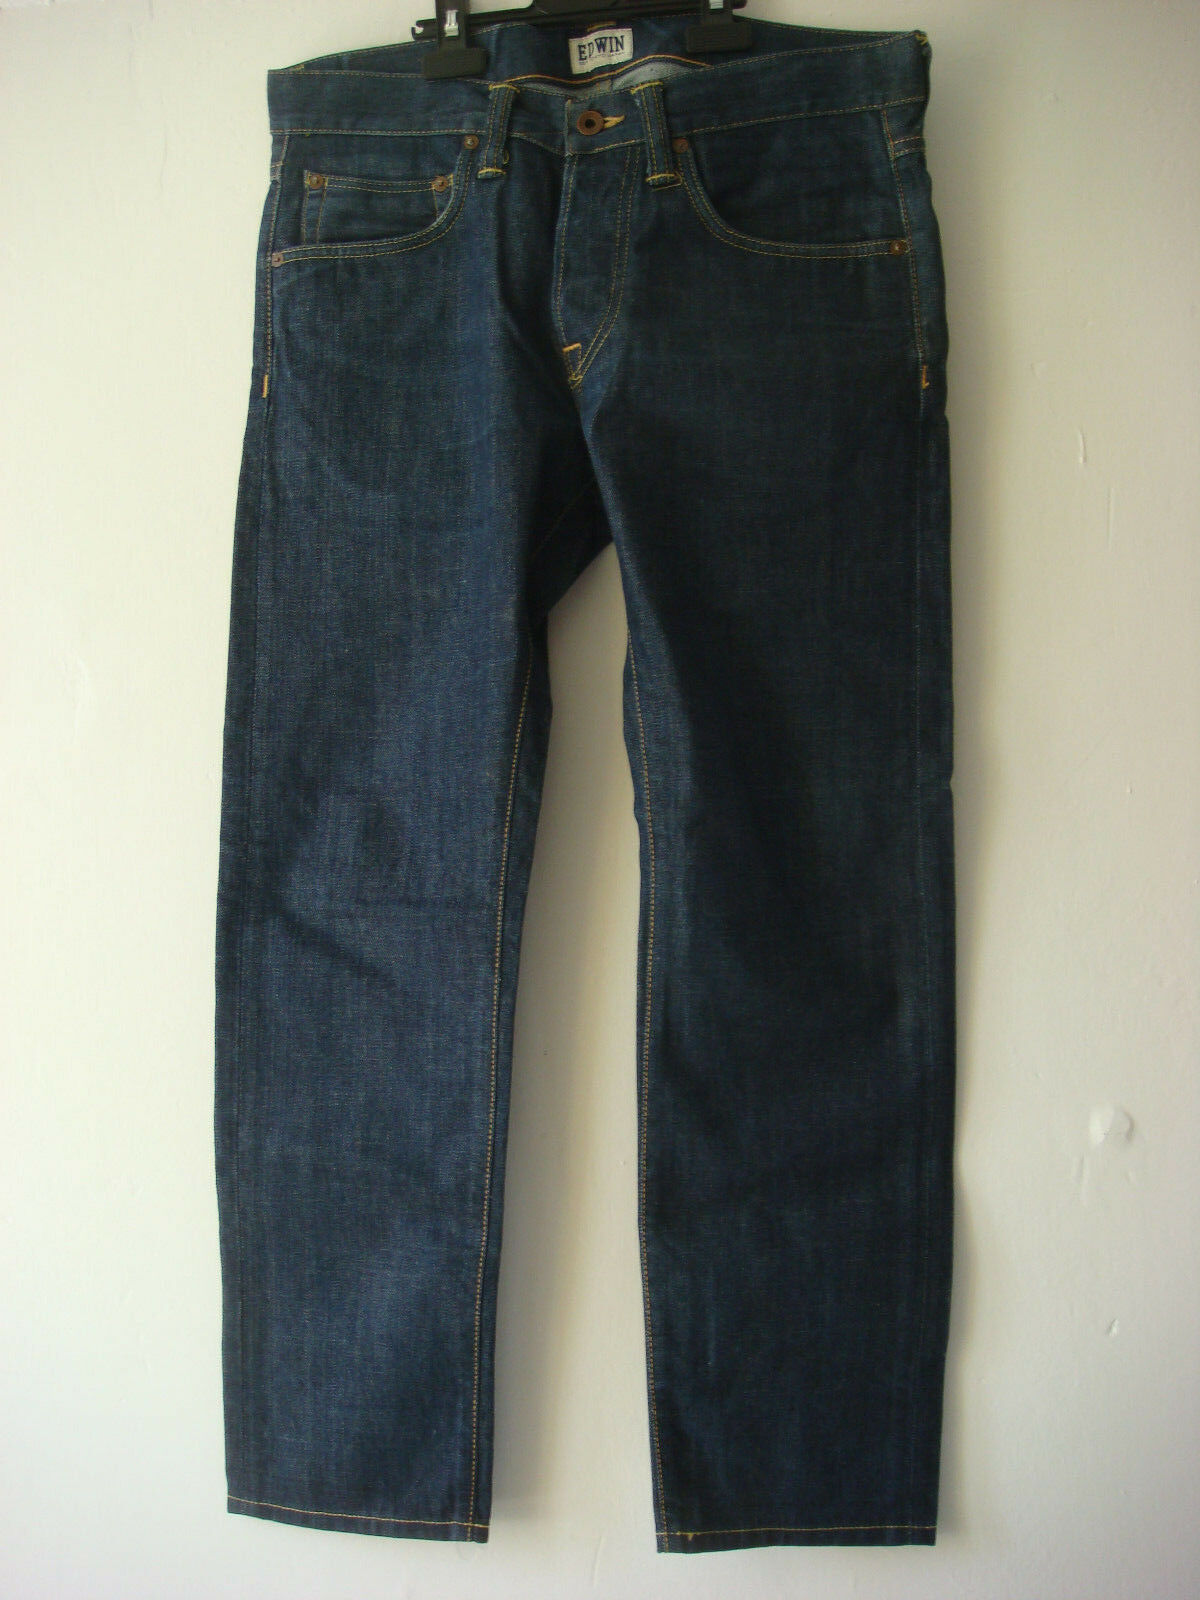 Mens Edwin bluee Jeans Est Tokyo Japan Relaxed Fit Size 31 x 29